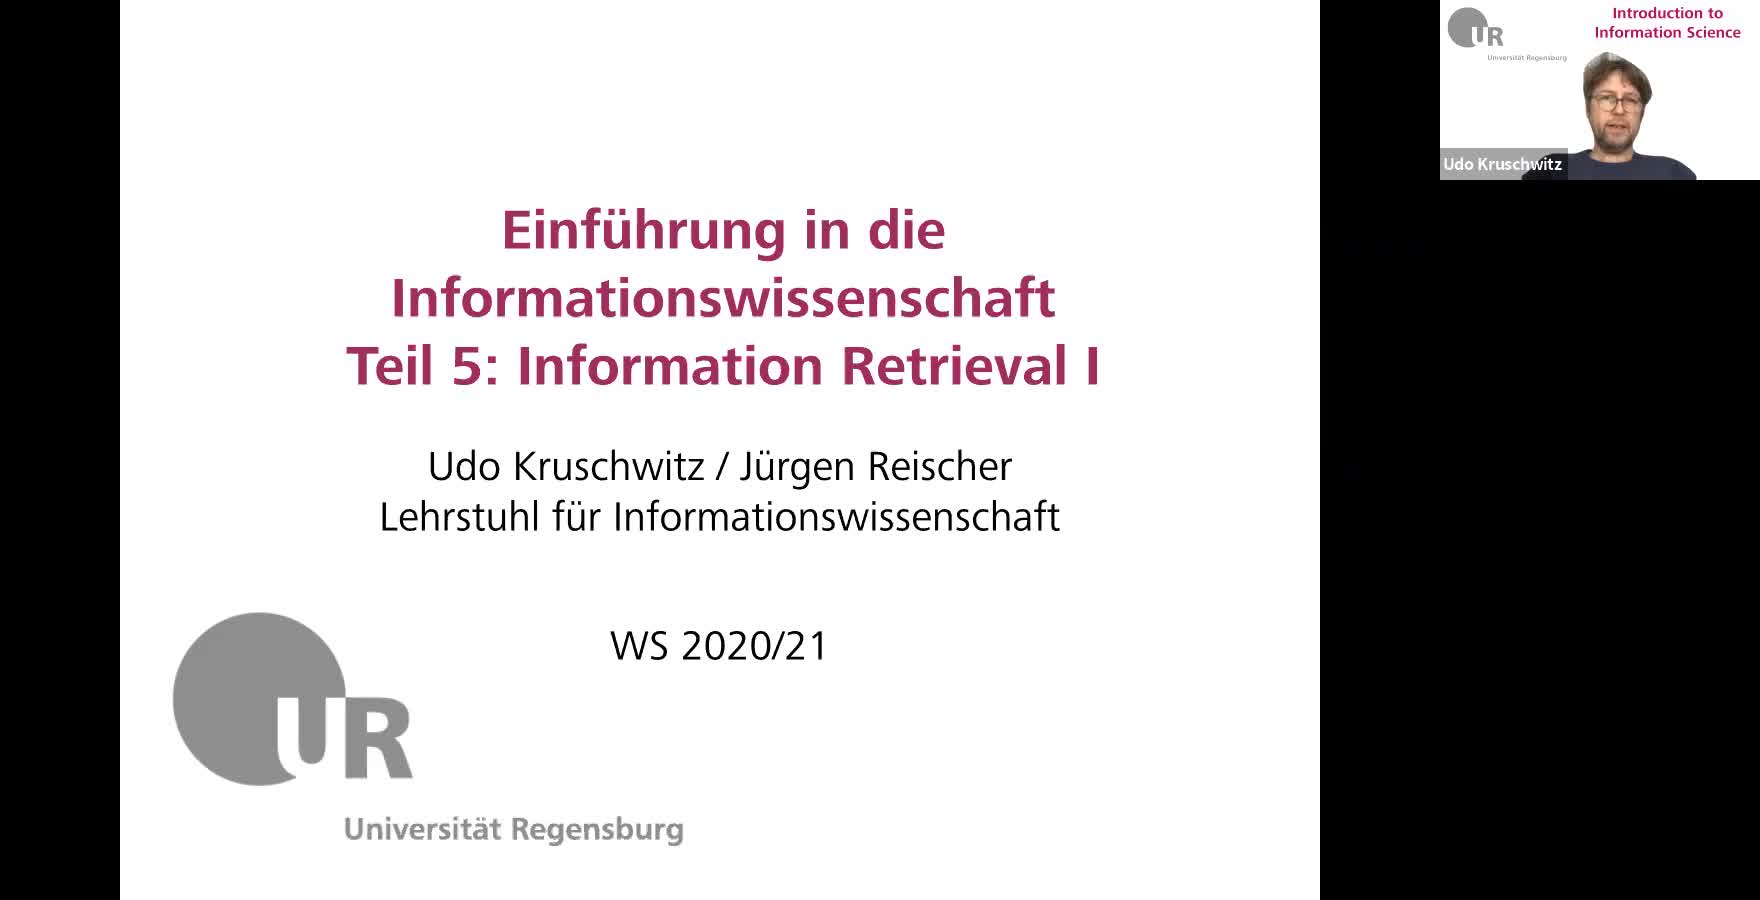 Introduction to Information Science - Lecture 9 (Information Retrieval I)